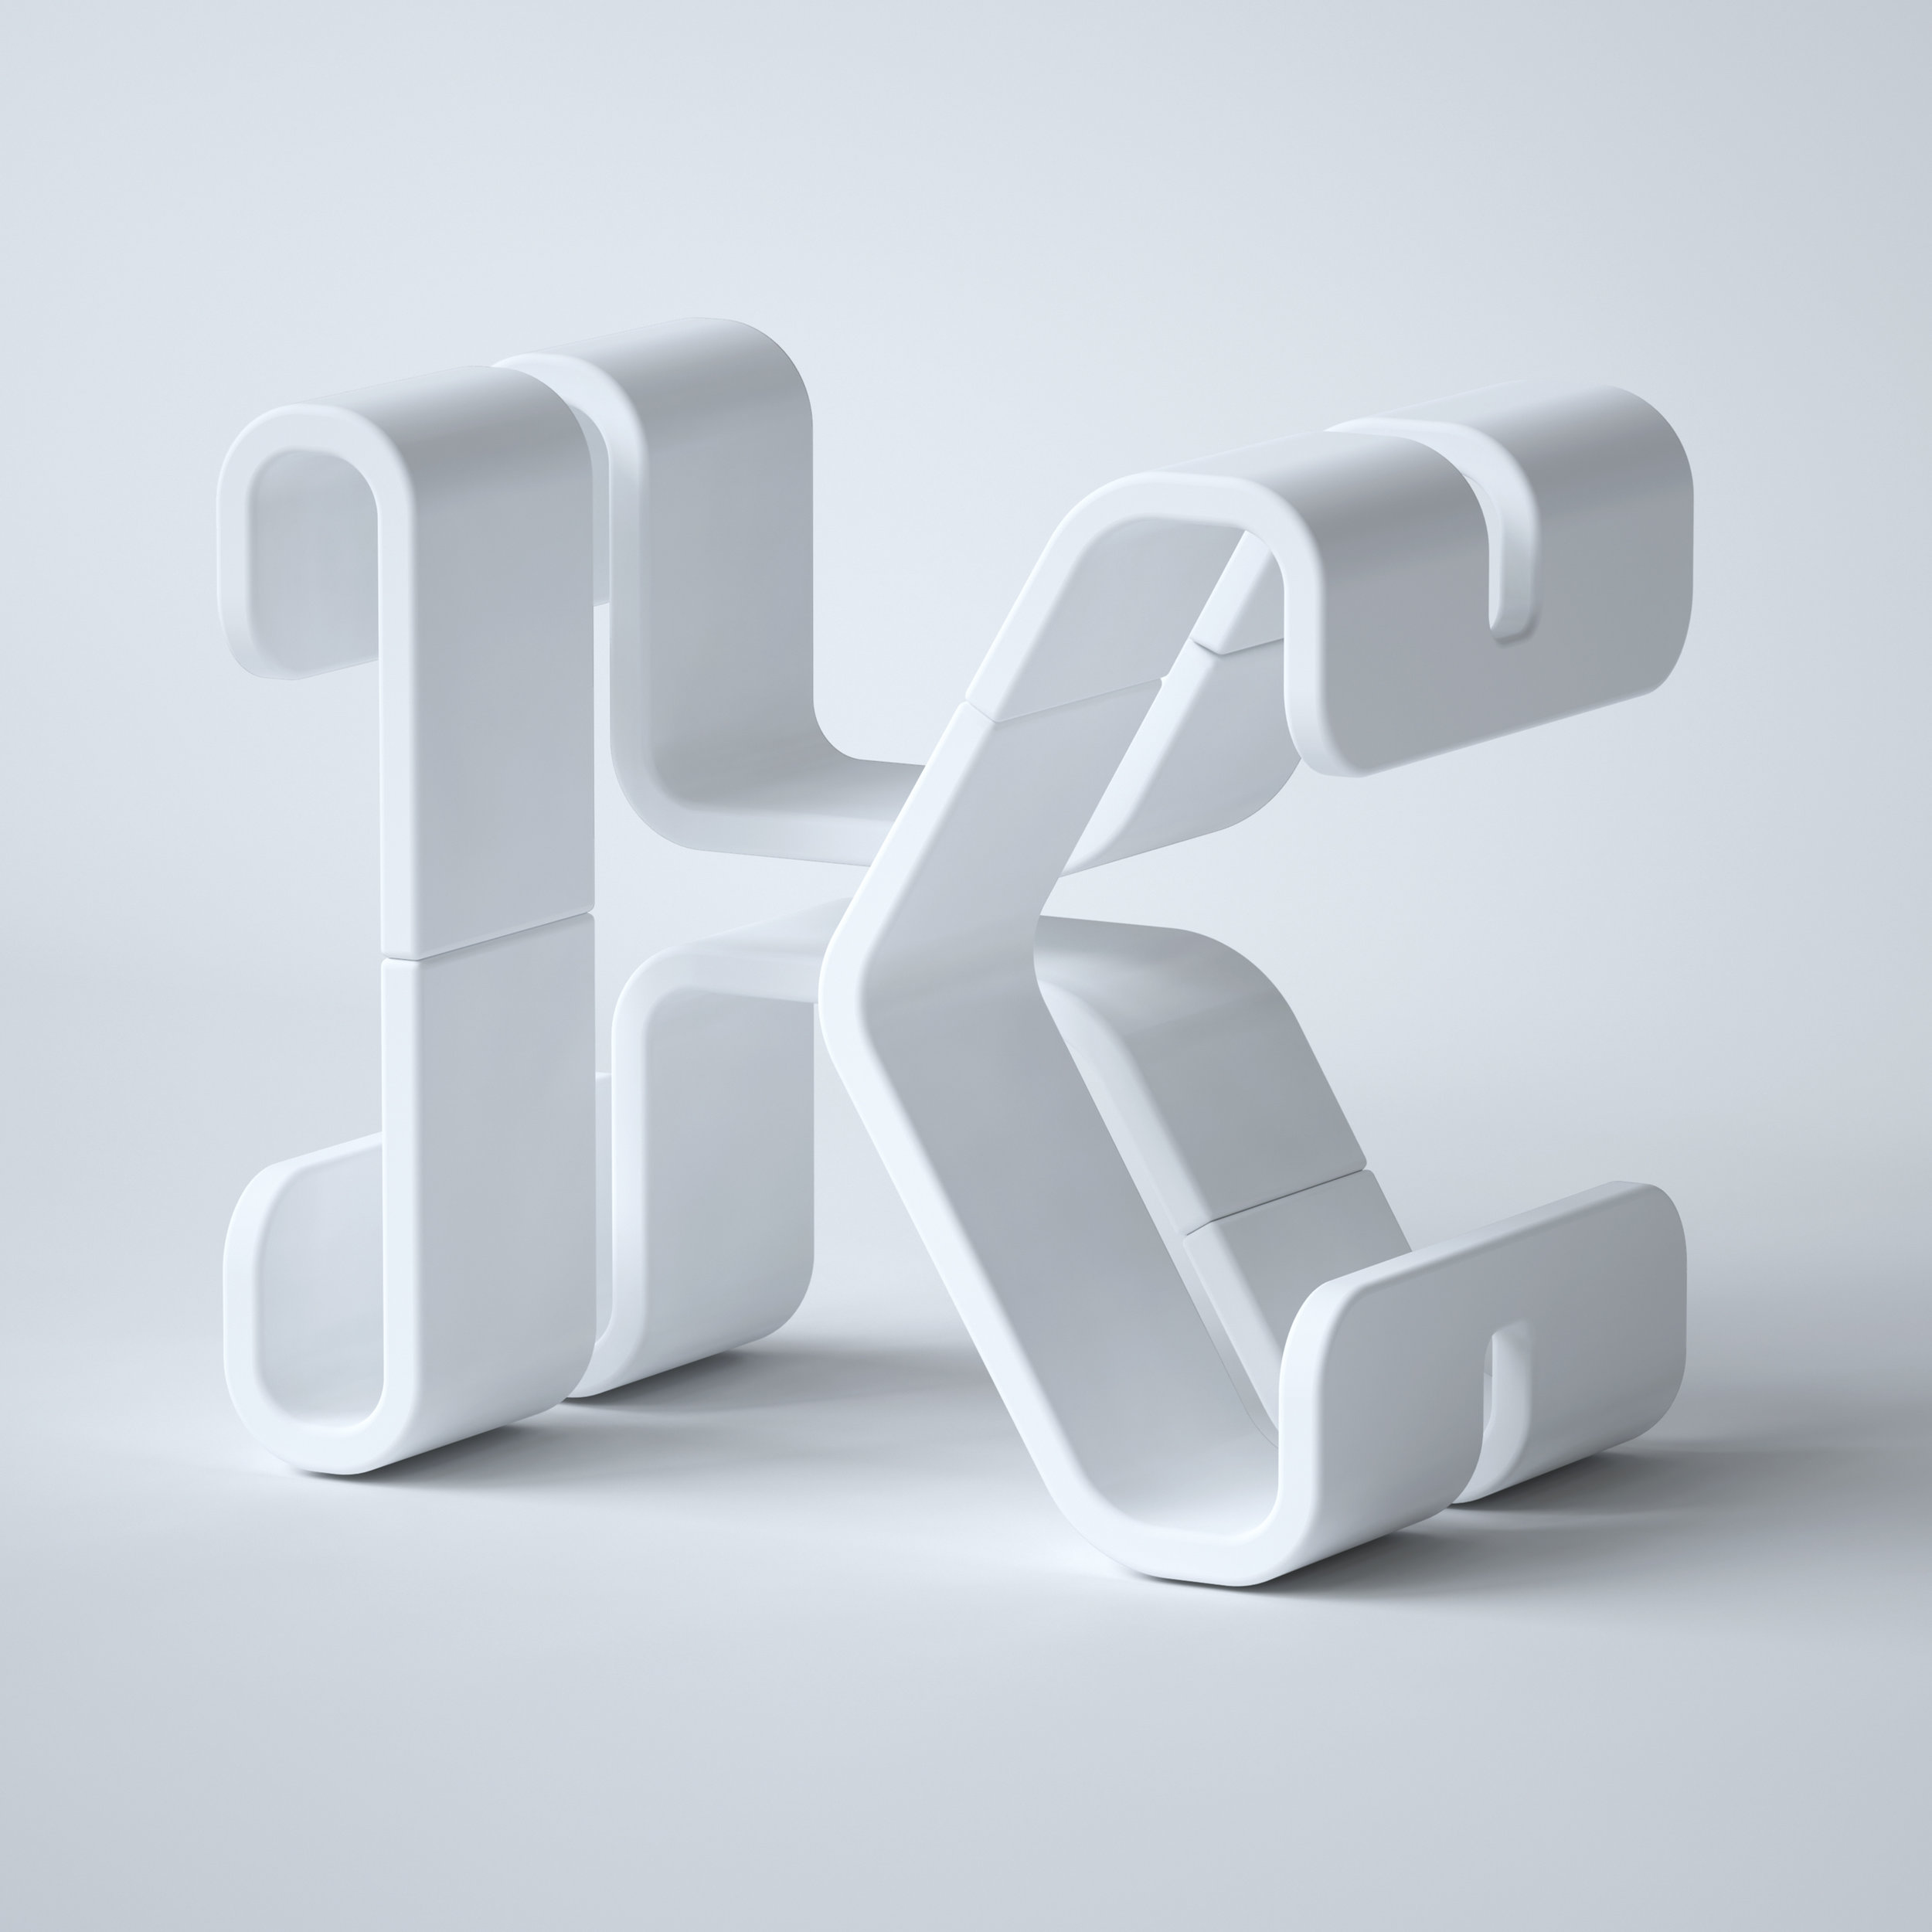 36 Days of Type 2019 - 3D Typeform letter K clay model visual.